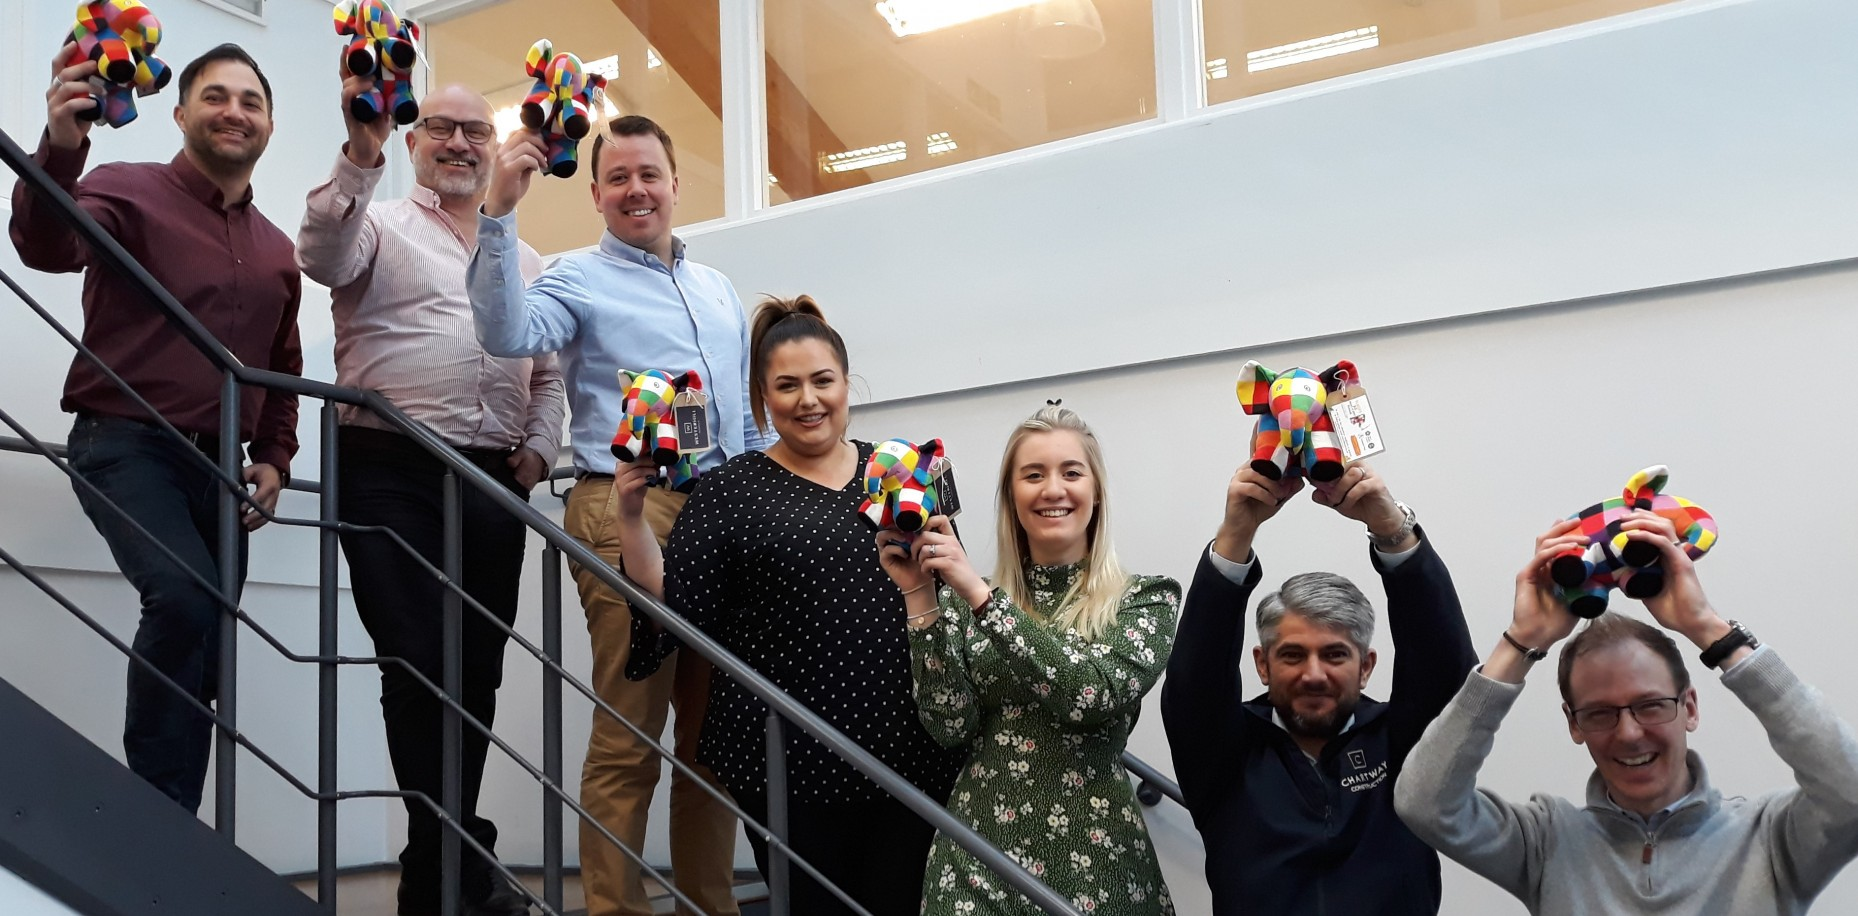 Westerhill Homes hits the trail as Official Presenting Partner for Elmer's Big Heart of Kent Parade